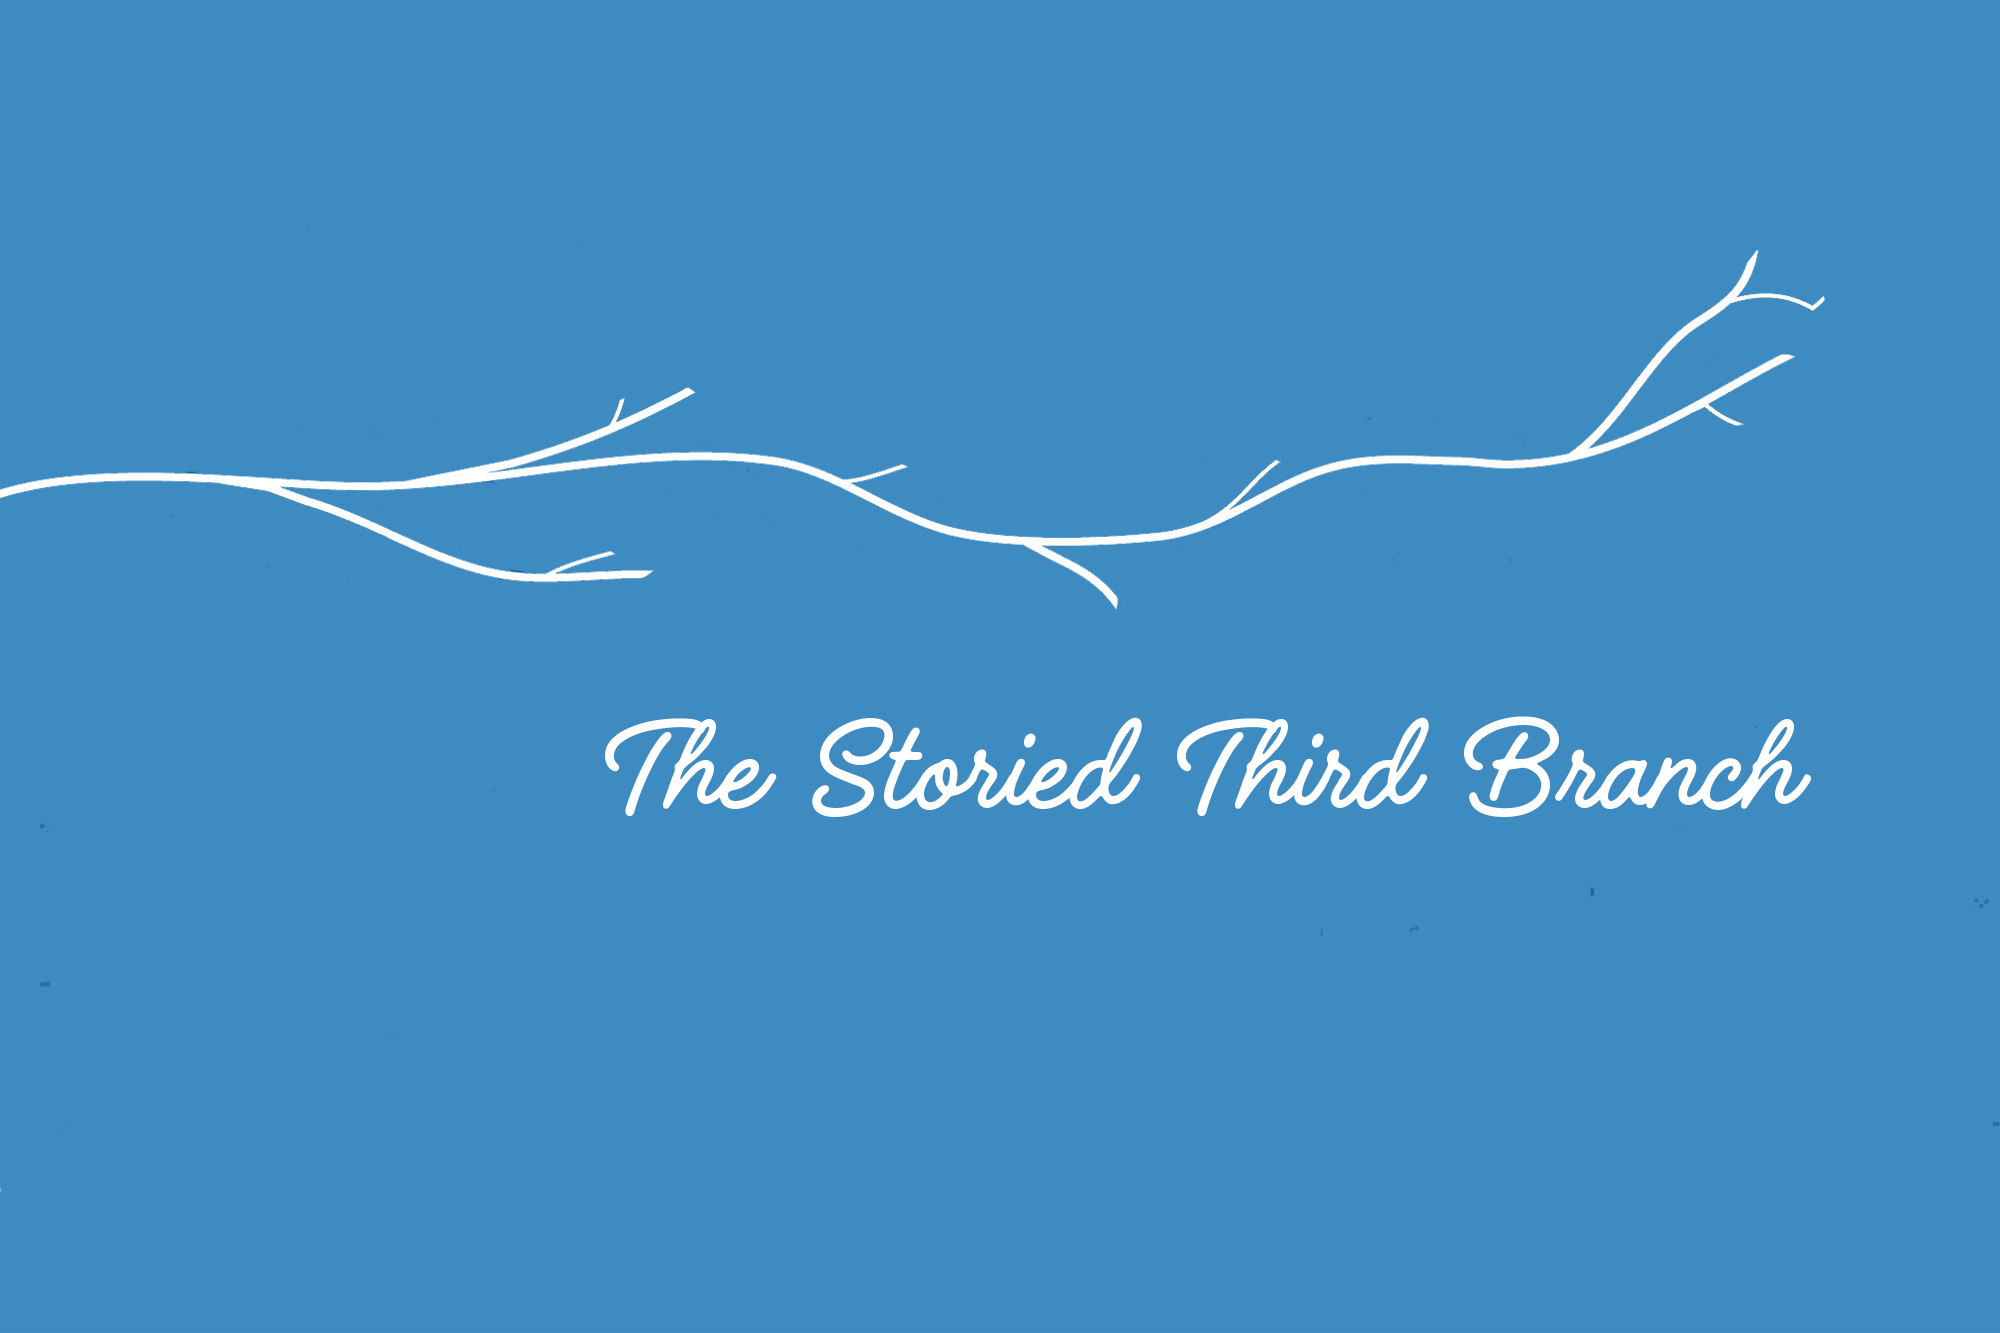 The Storied Third Branch